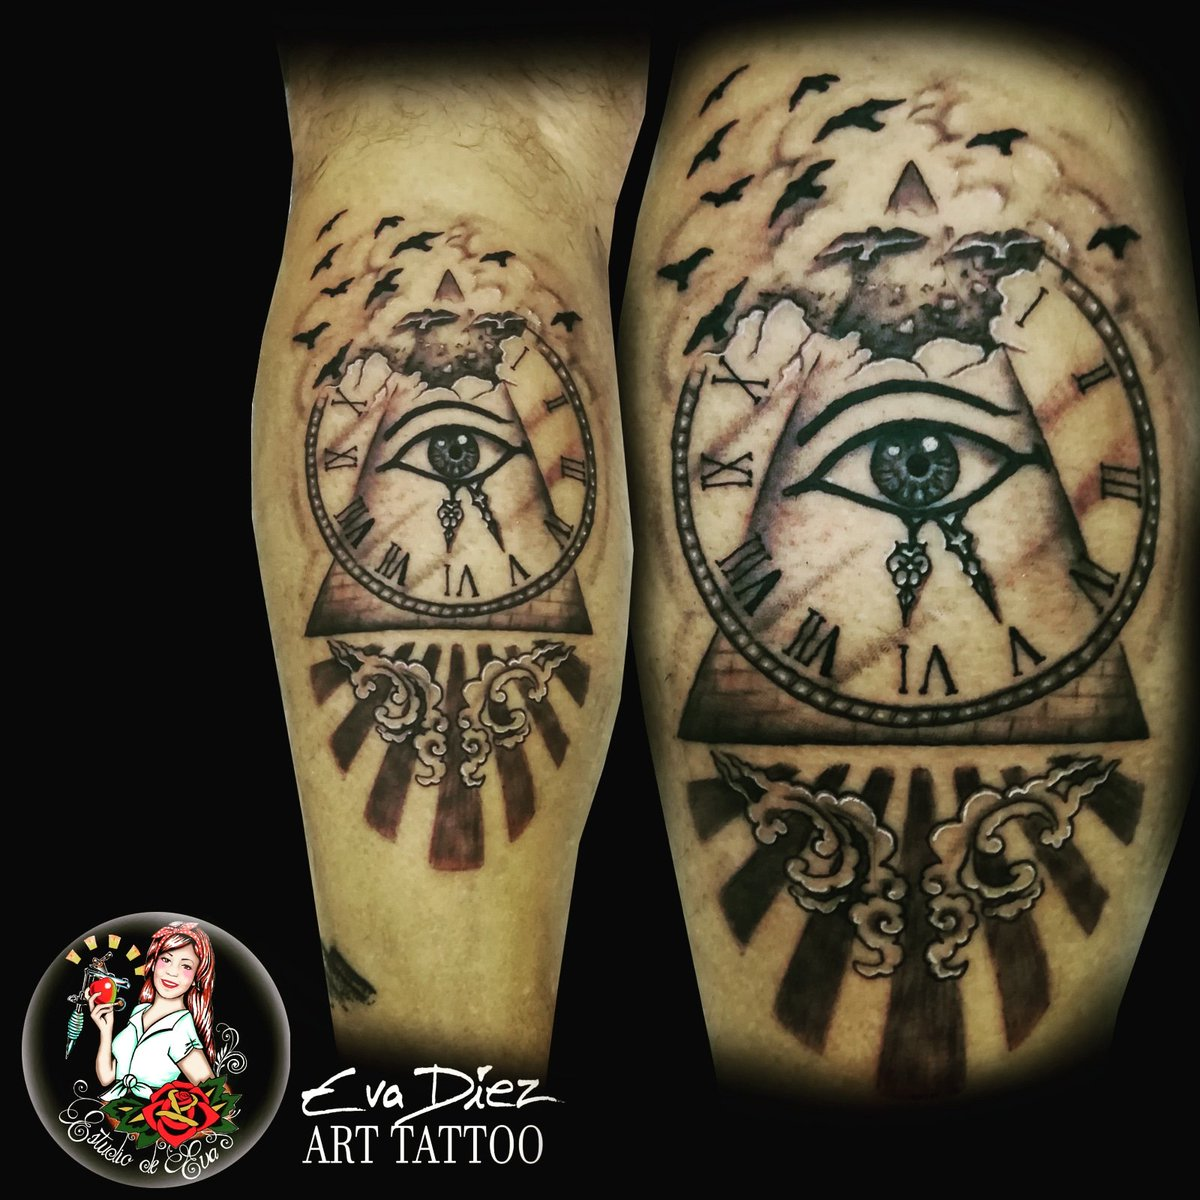 Eva Díez Tattoo On Twitter Ojo De Horus Tattoo Ink Tattoostudio